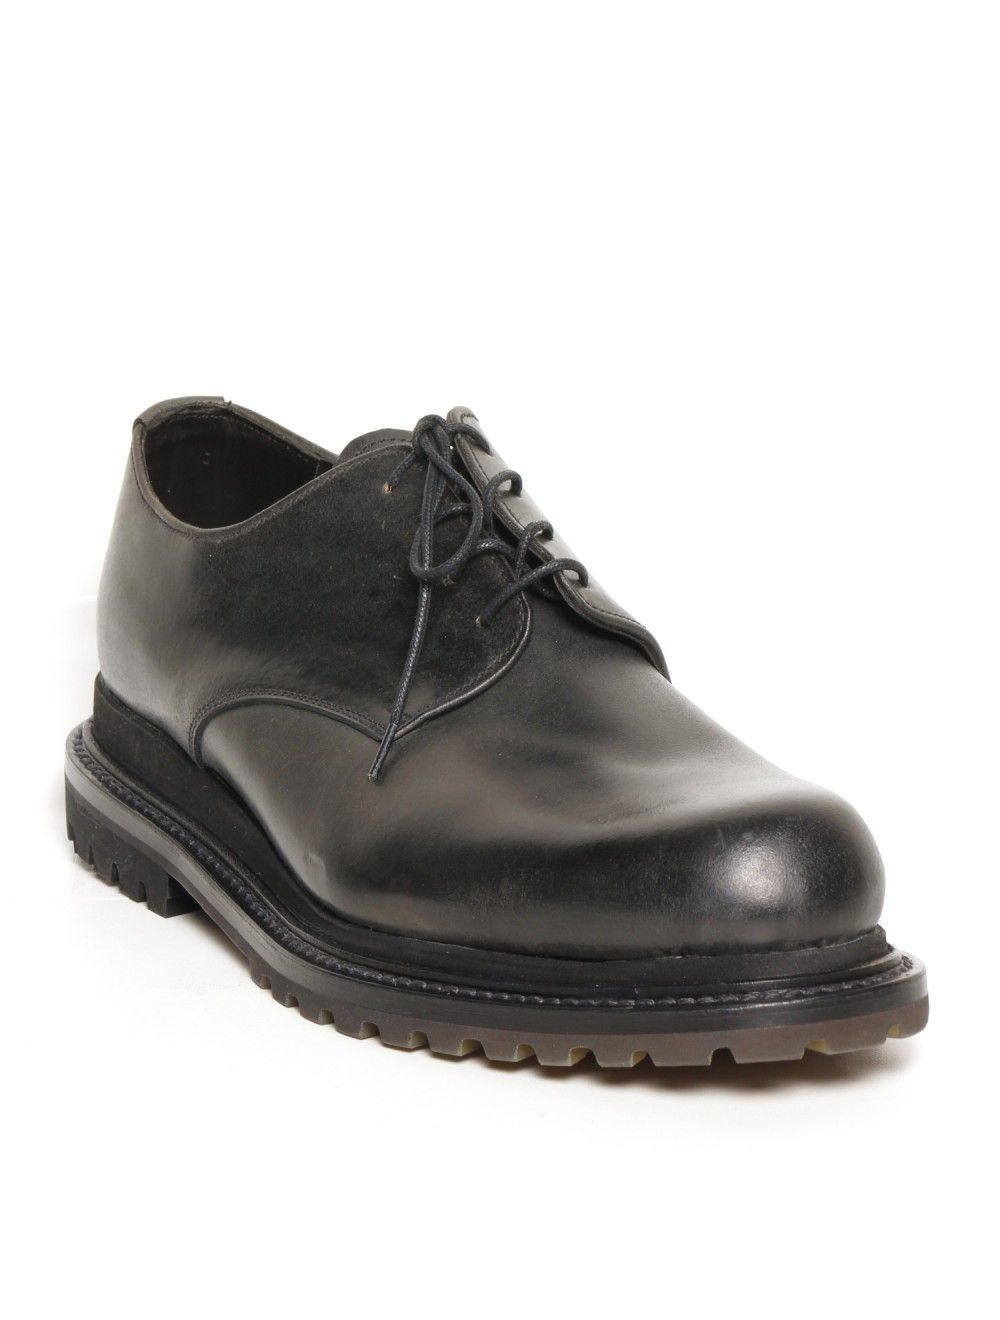 Thick Sole Men's Dress Shoes   ... oxfords in smooth black leather with 2cm